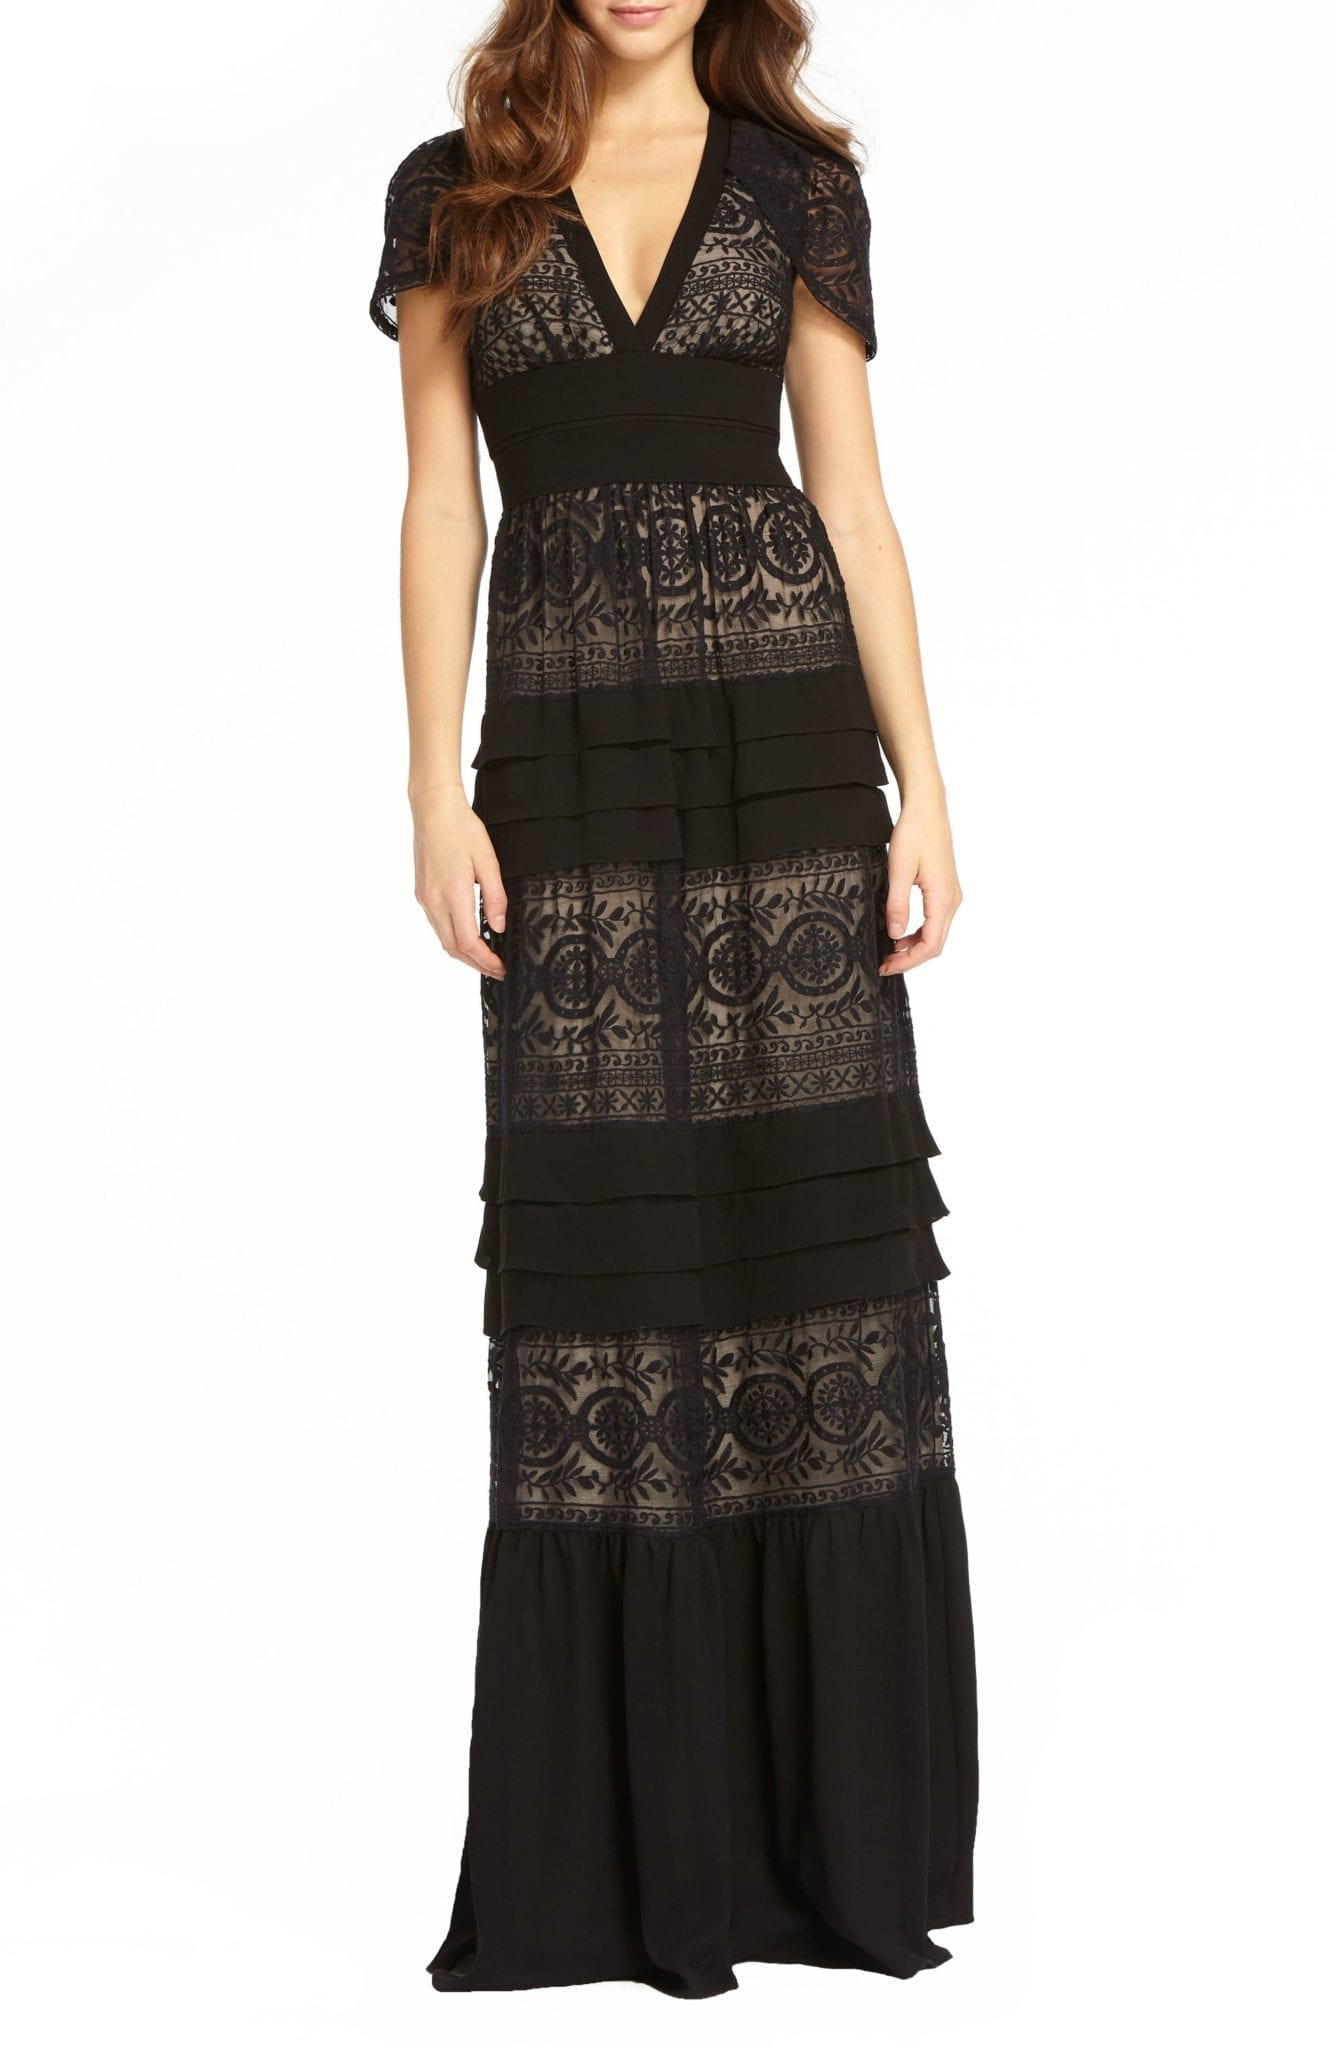 ML MONIQUE LHUILLIER Tiered Lace Black / Nude Gown - We Select Dresses